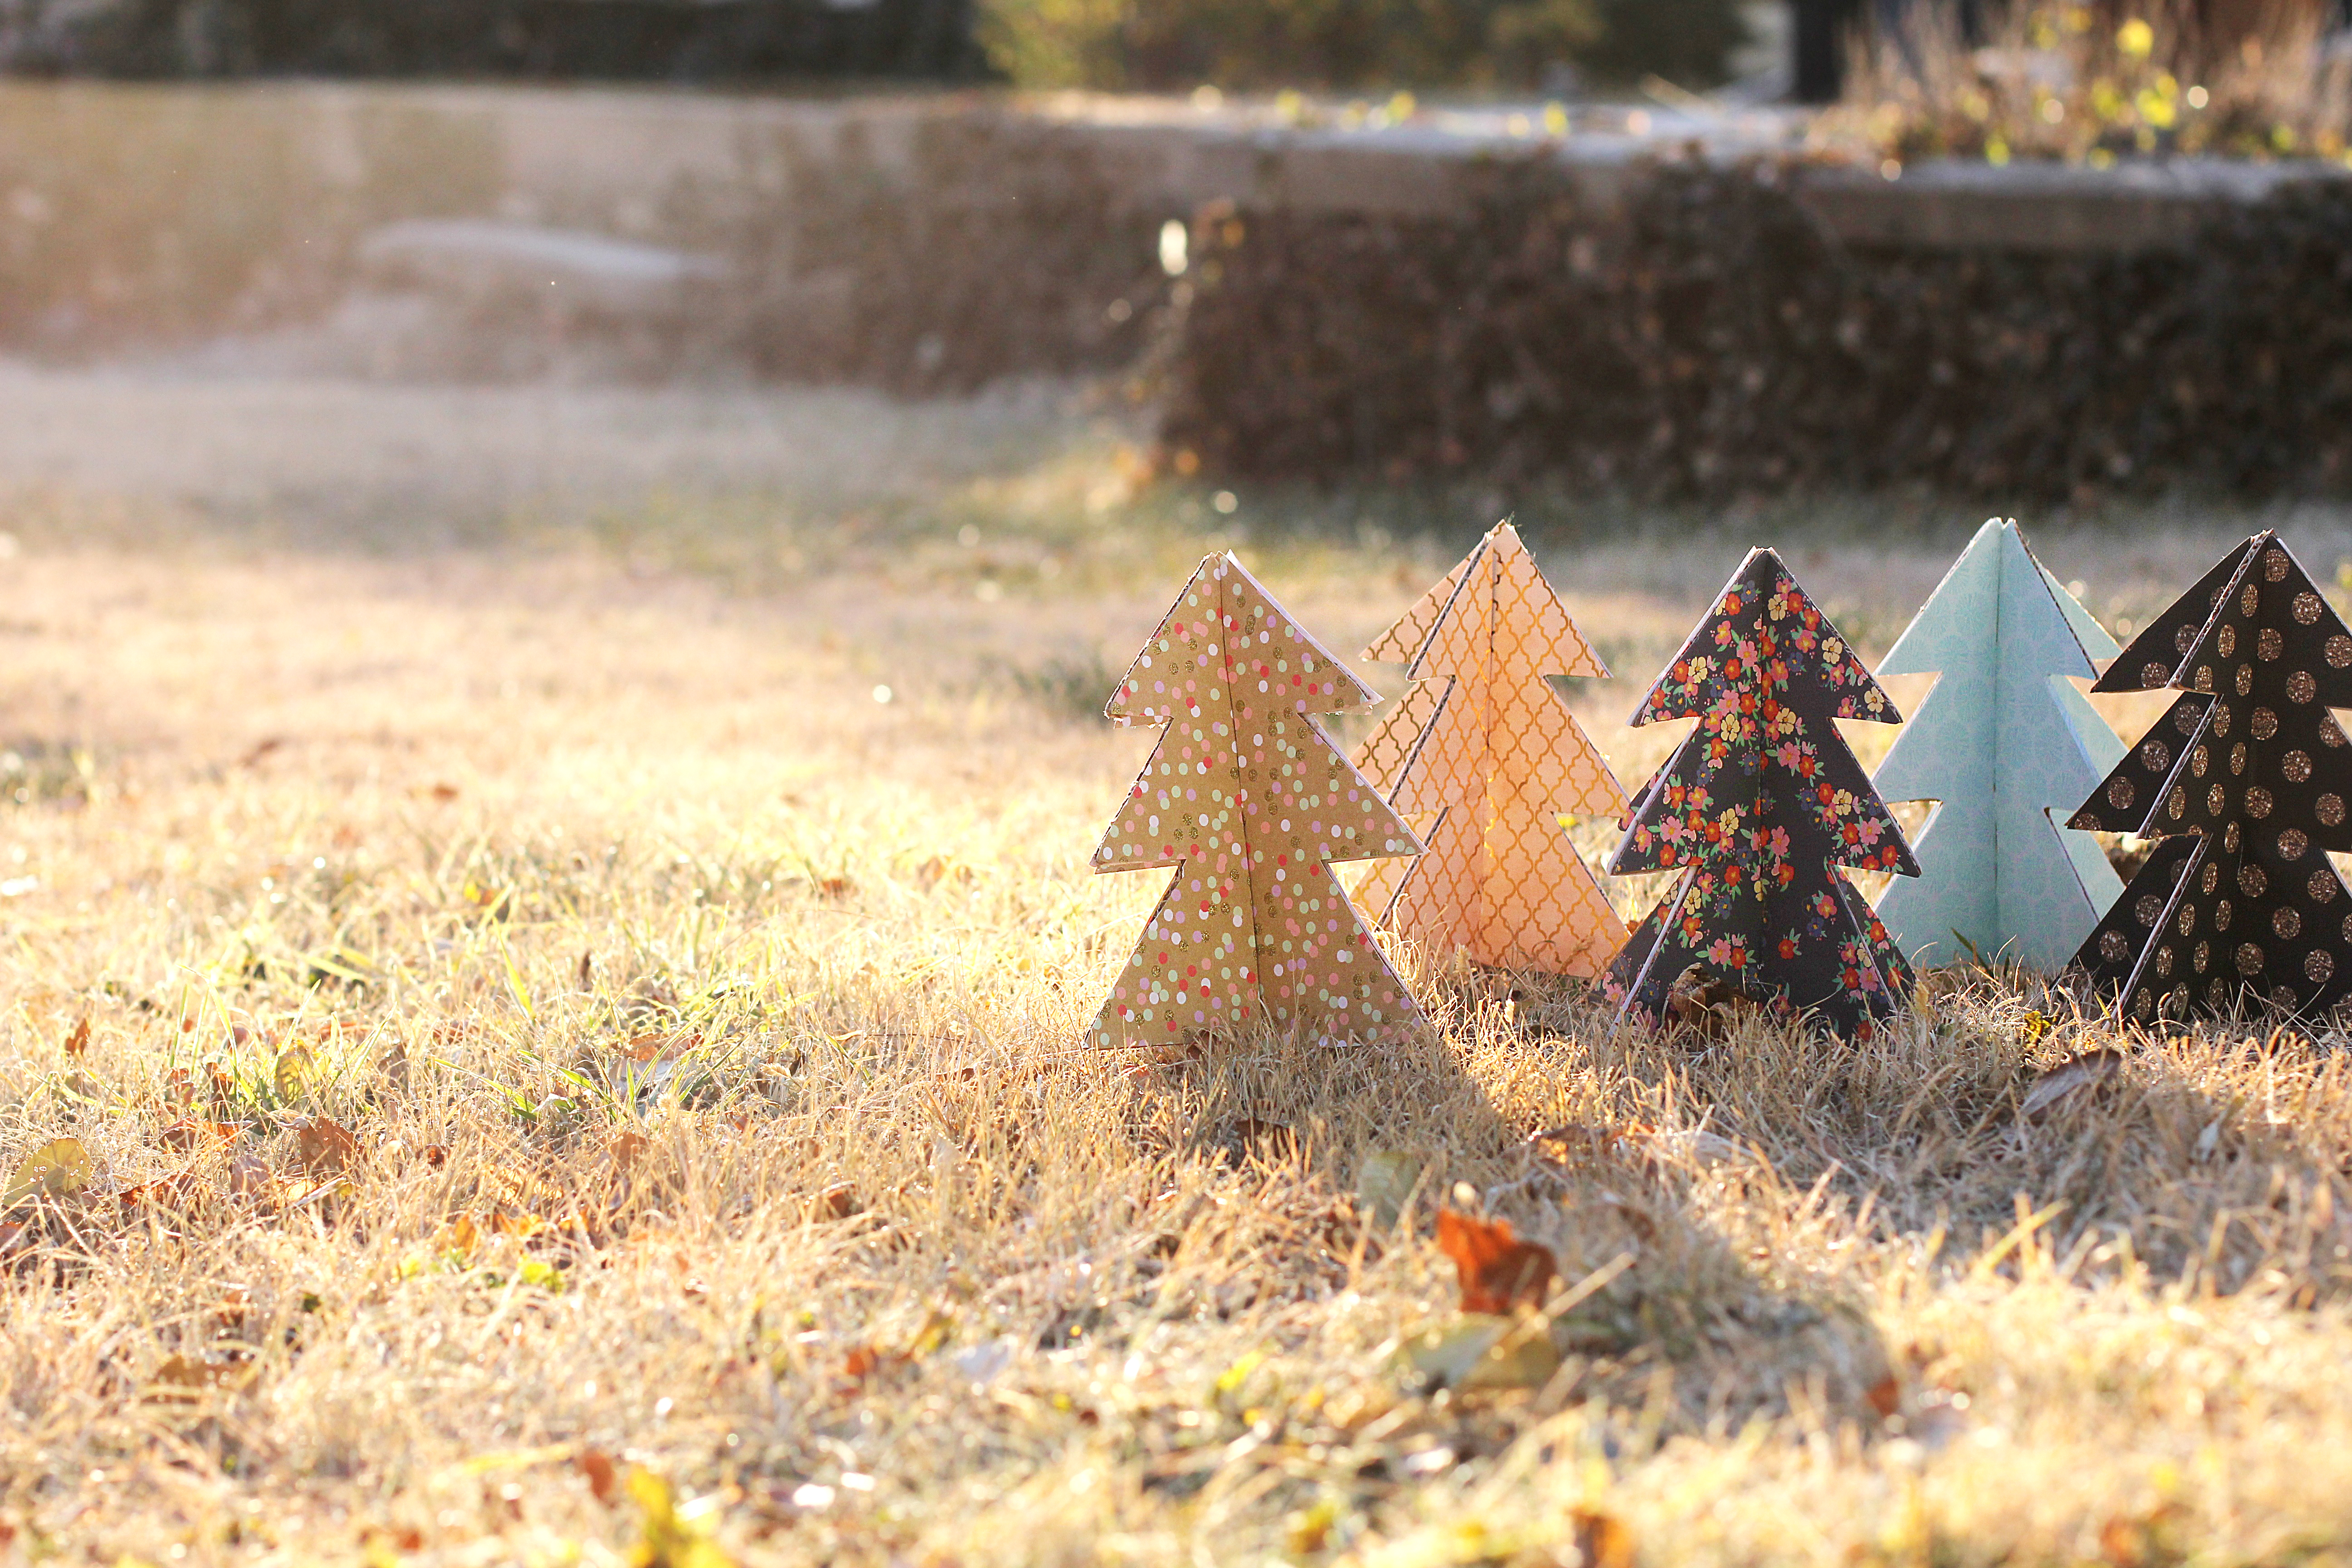 DIY Festive Cardboard Christmas Trees | Life of B Blog